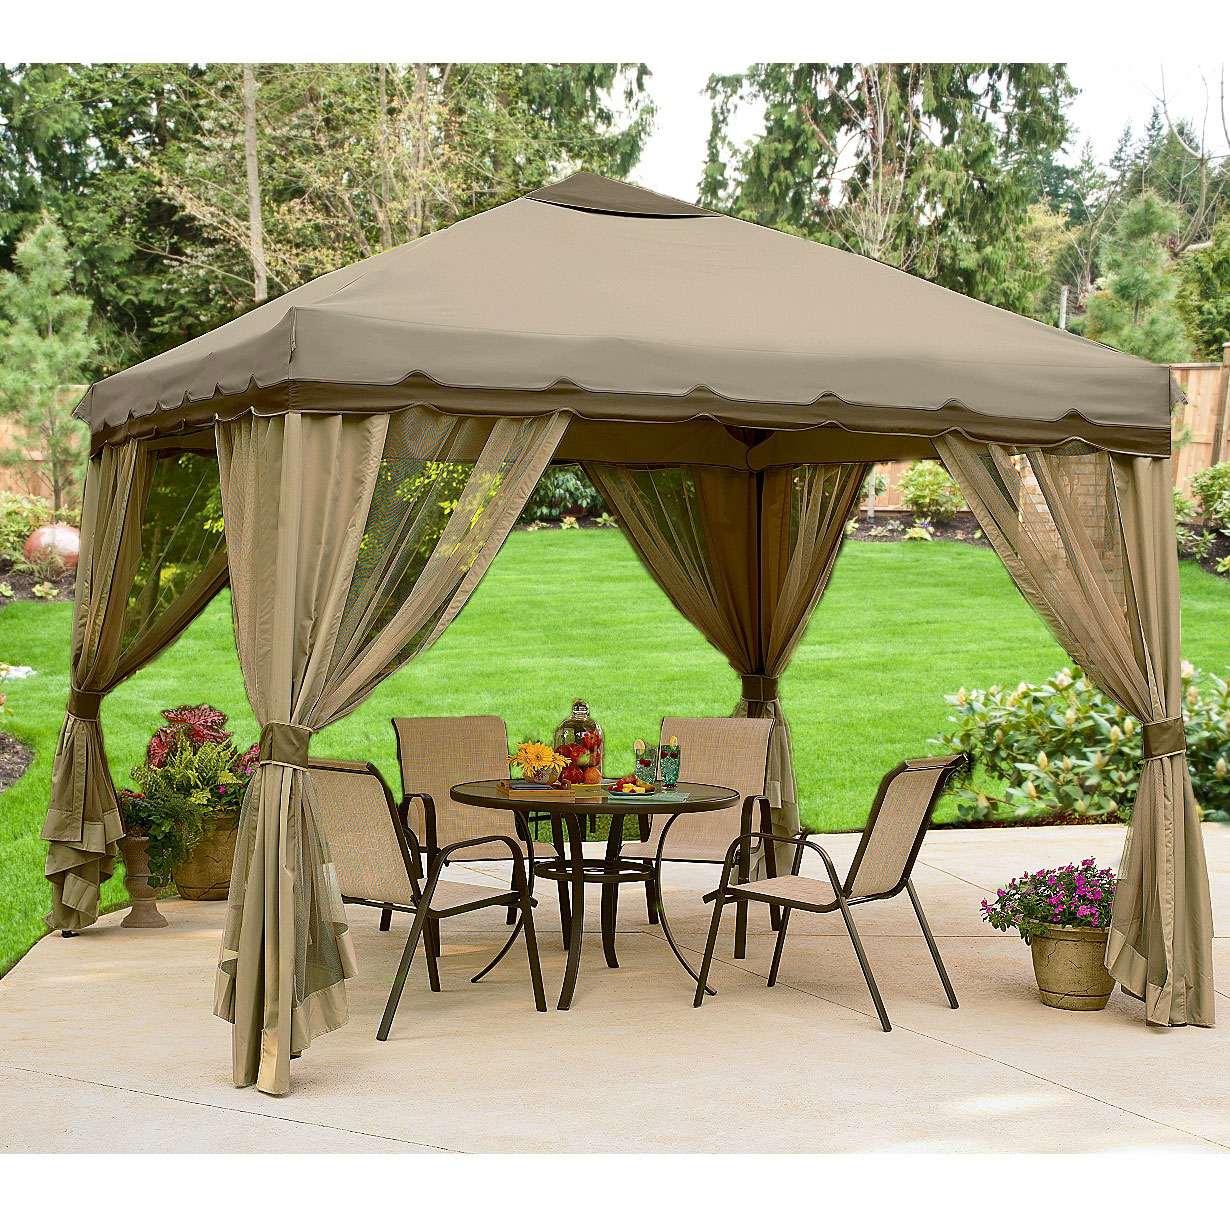 10 X 10 Portable Gazebo Replacement Canopy And Netting